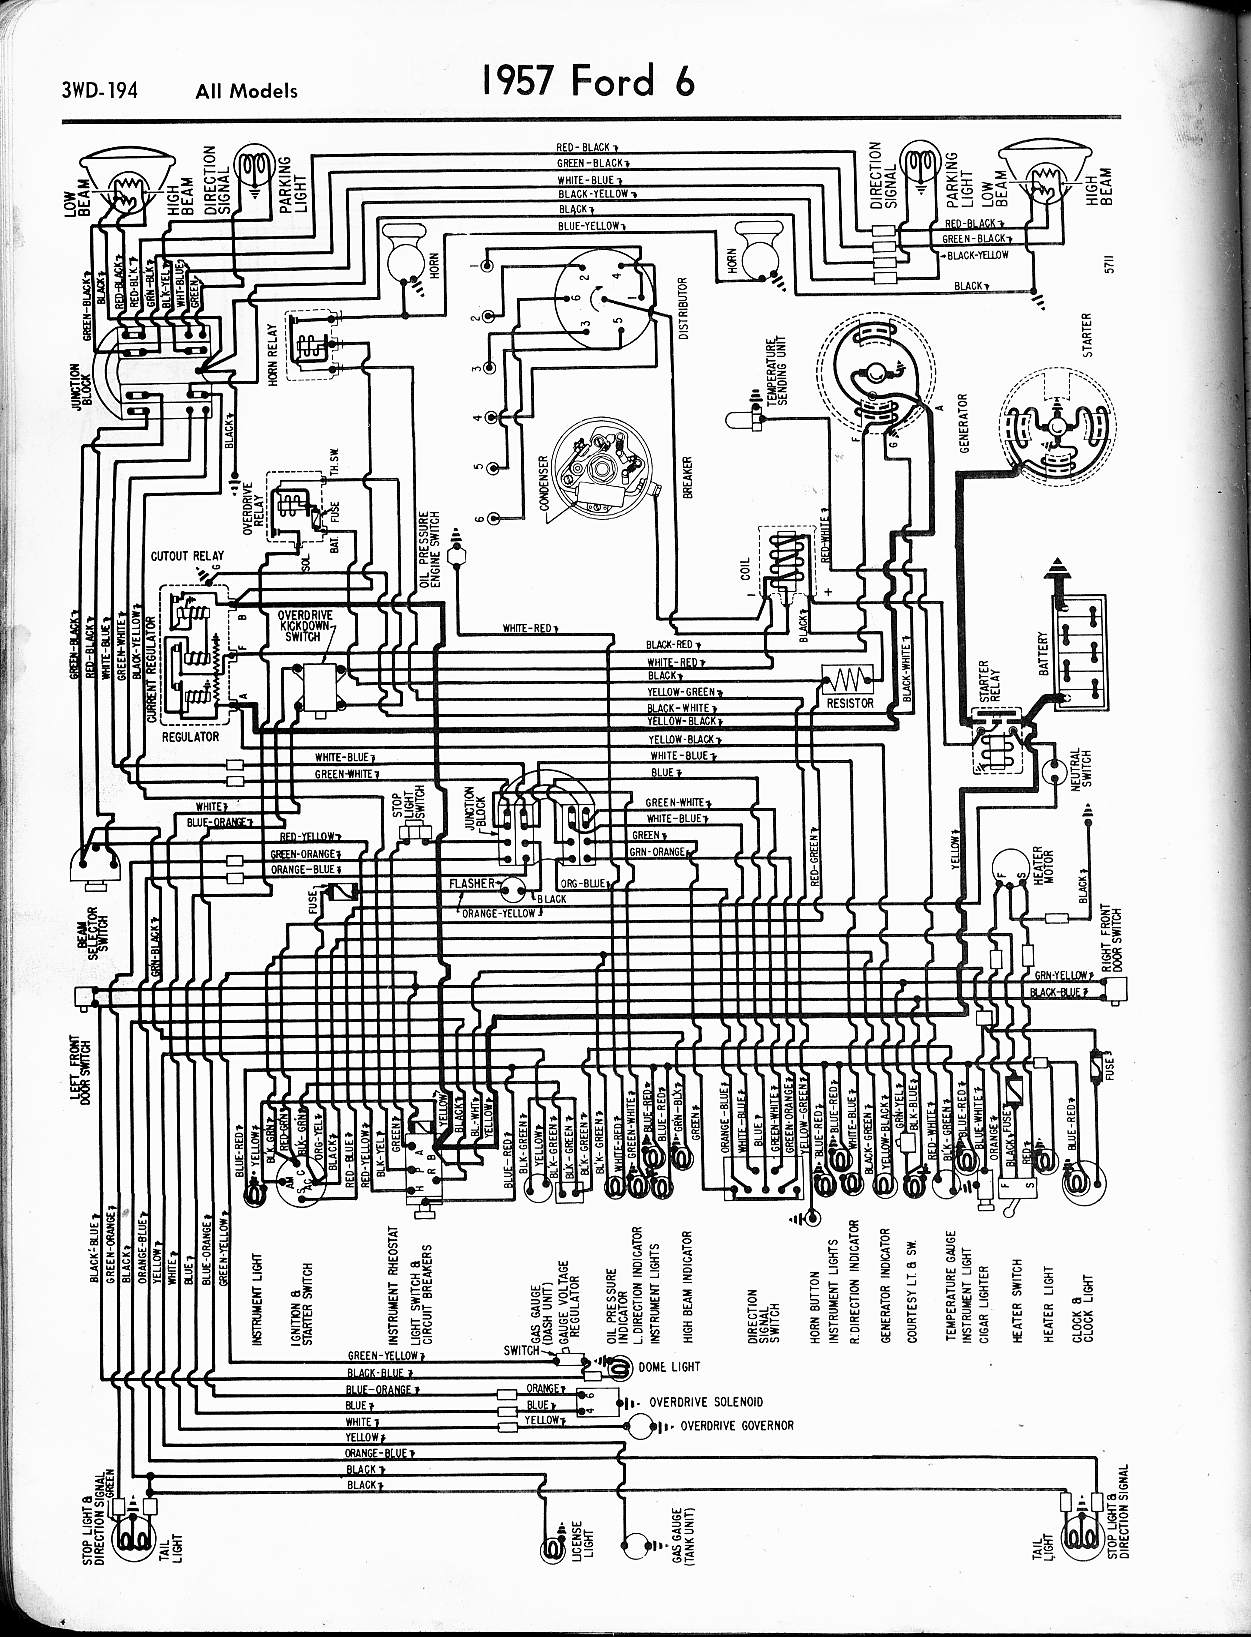 MWire5765 194 57 65 ford wiring diagrams ford wiring diagrams at bayanpartner.co